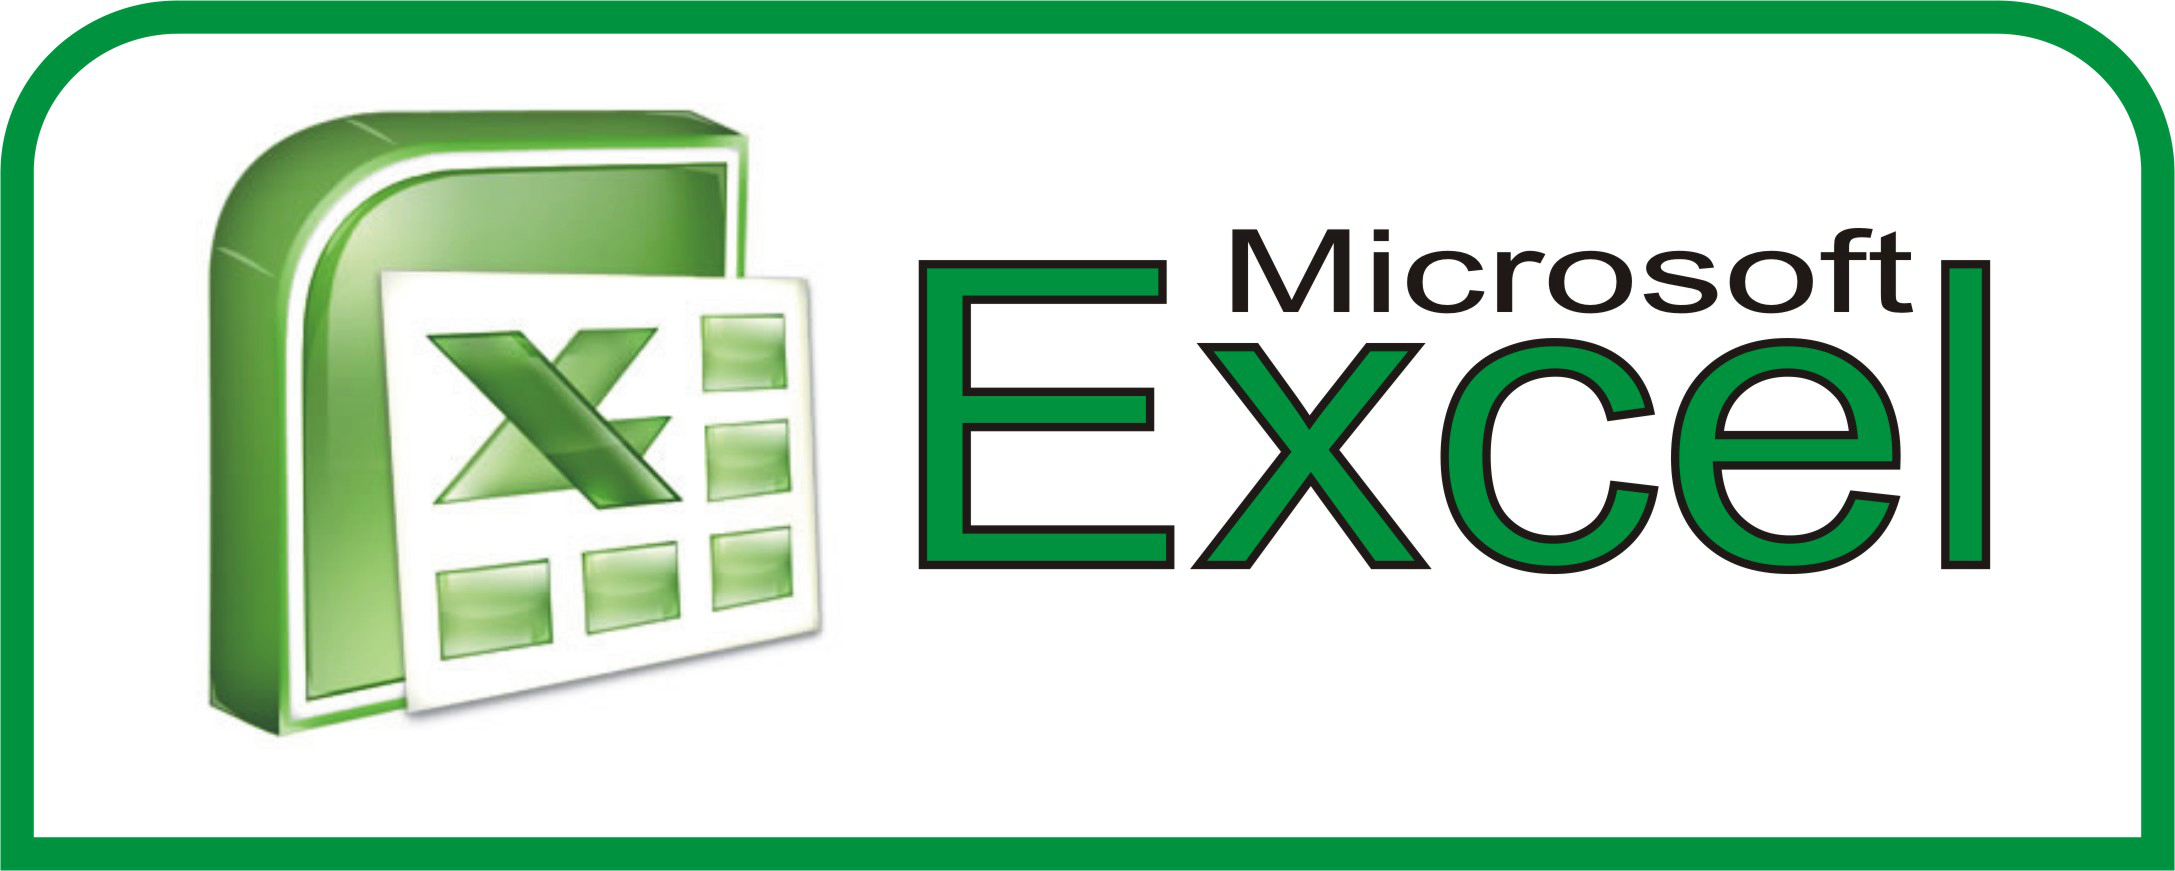 Ediblewildsus  Pretty  Excel Shortcuts You Probably Didnt Know About  Techdissected With Licious Slicers In Excel  Besides Shortcut Sort Excel Furthermore Data Entry Form Excel With Comely Excel Invoice Template  Also Pdf To Excel Free Convert In Addition Tools Microsoft Excel And Excel Delimited List As Well As Microsoft Excel Has Stopped Working  Additionally Forecast Formula Excel From Techdissectedcom With Ediblewildsus  Licious  Excel Shortcuts You Probably Didnt Know About  Techdissected With Comely Slicers In Excel  Besides Shortcut Sort Excel Furthermore Data Entry Form Excel And Pretty Excel Invoice Template  Also Pdf To Excel Free Convert In Addition Tools Microsoft Excel From Techdissectedcom